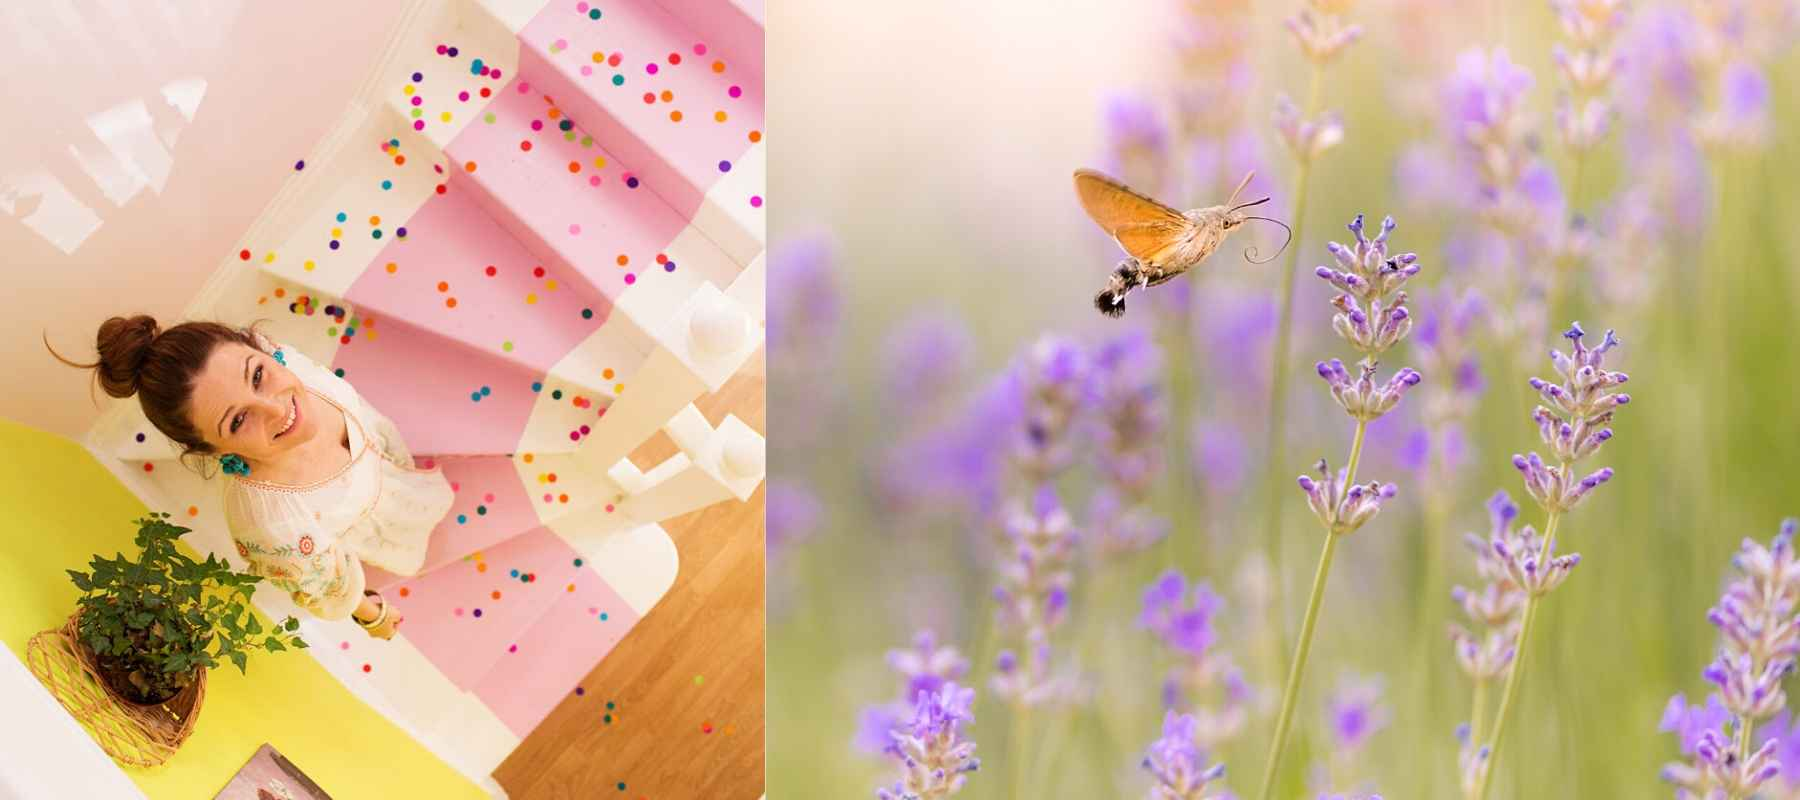 Woman looking up pink painted stairs and a butterfly in wild flowers